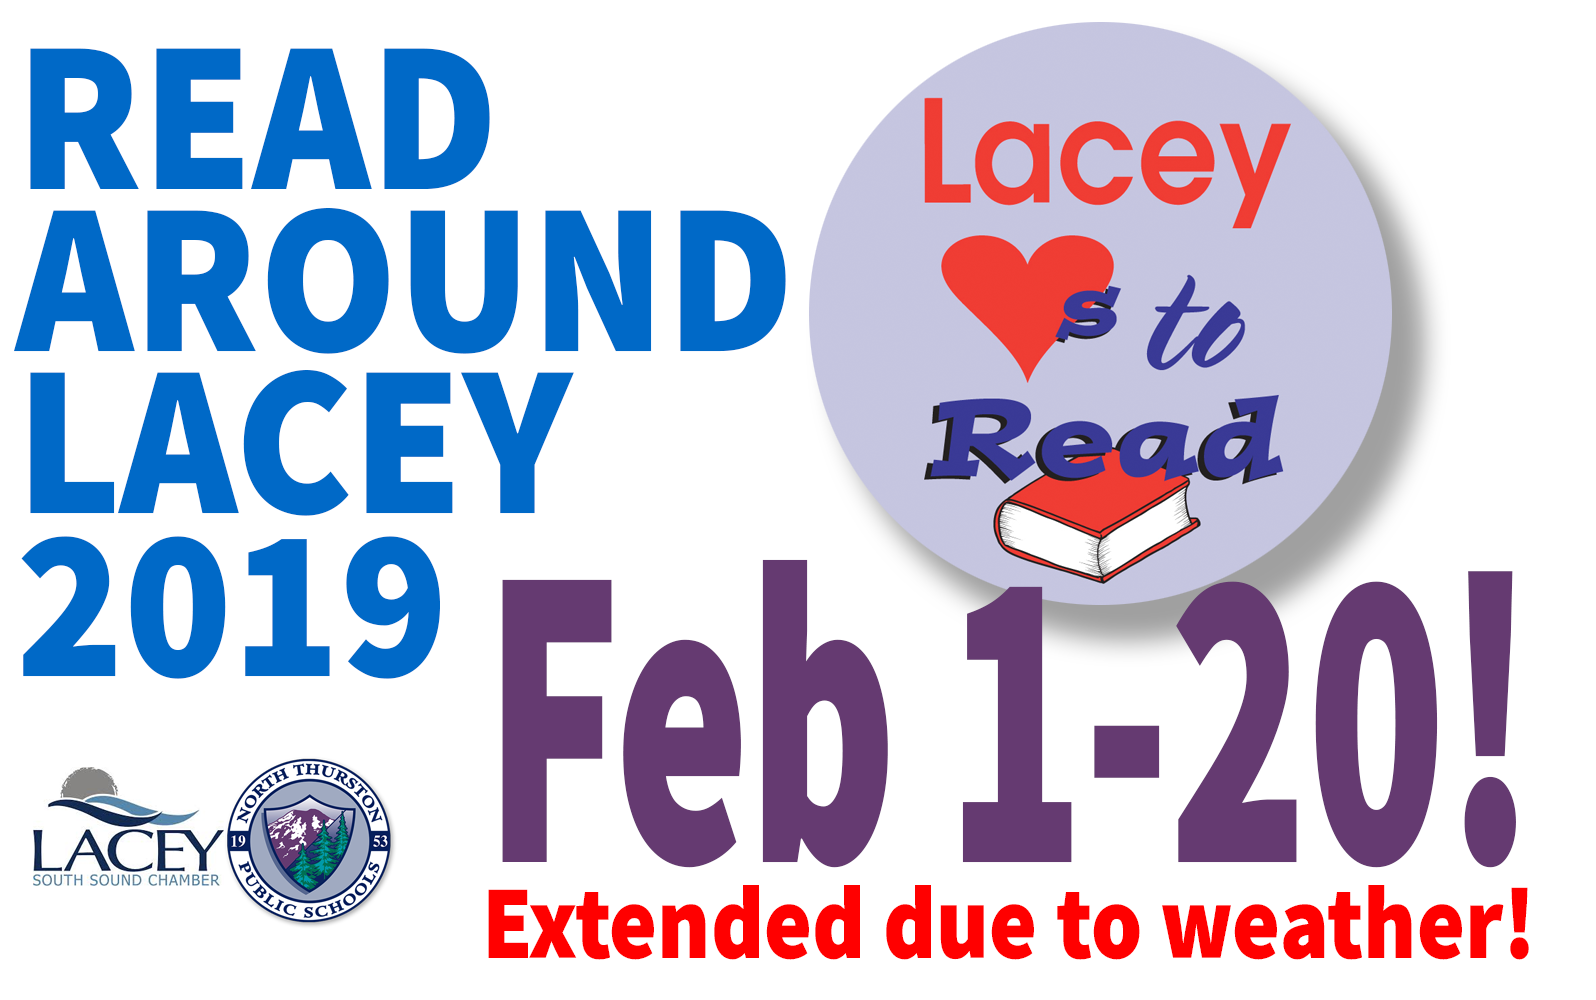 Read Around Lacey 2019 - February 1-20!